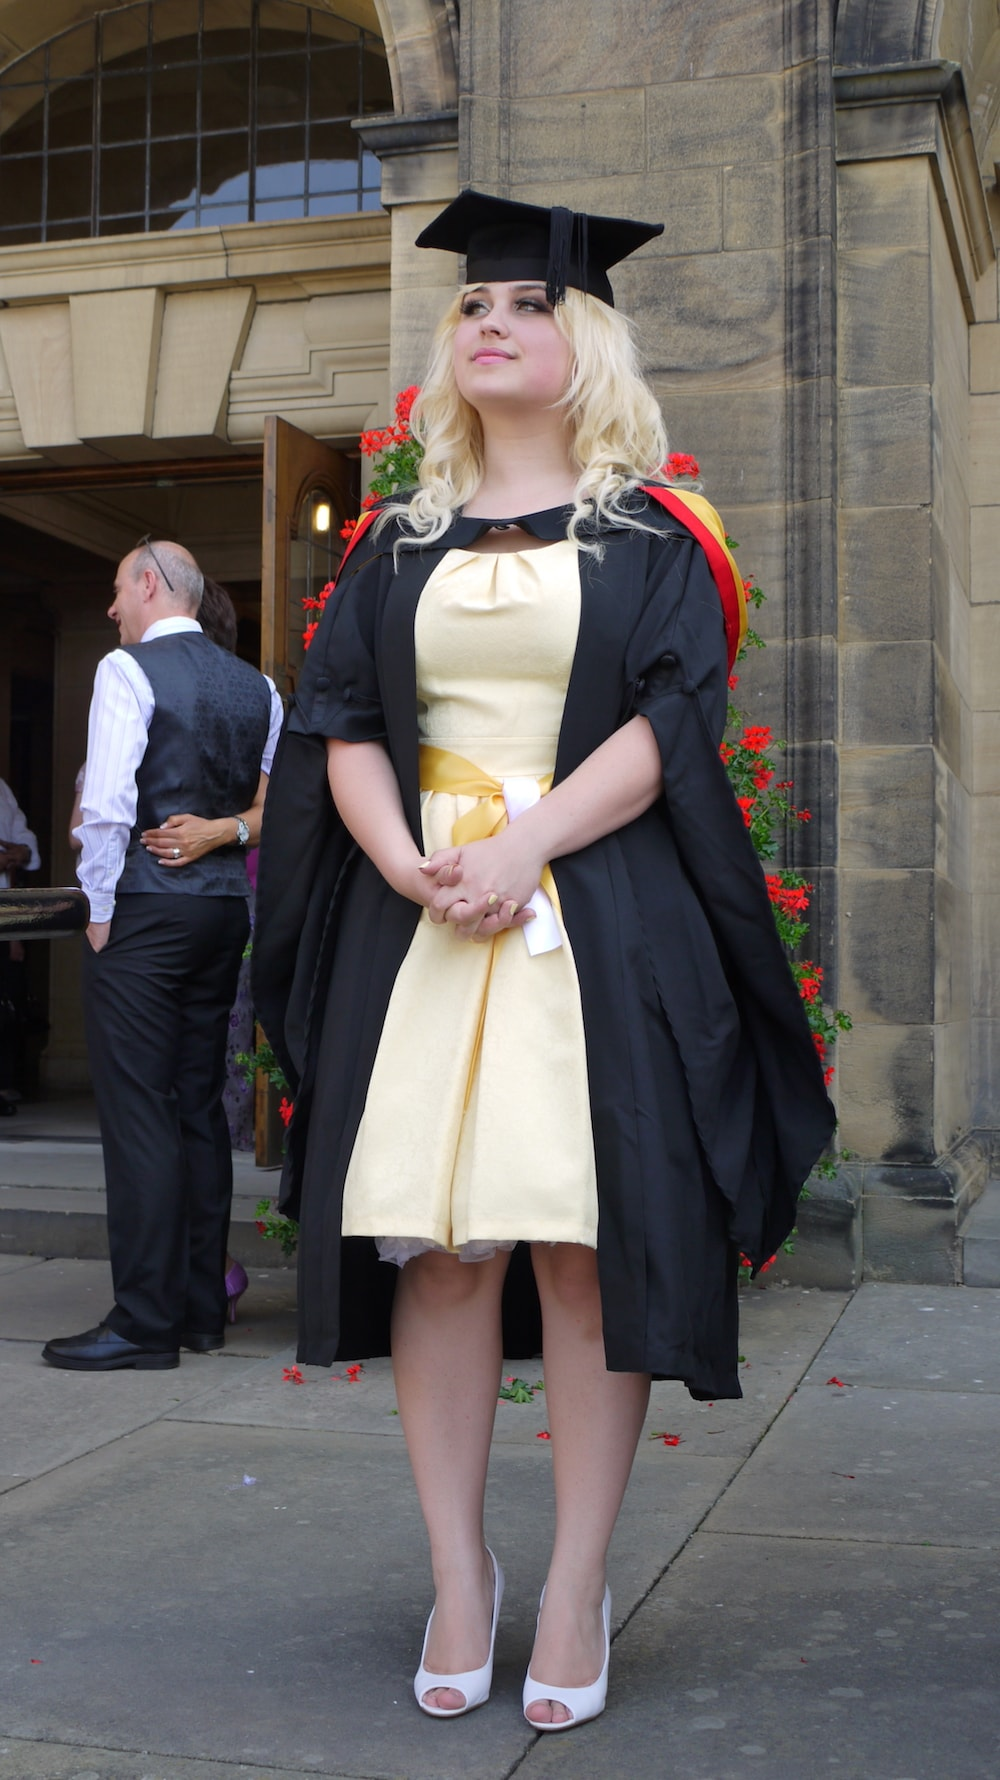 Jess graduated from Bangor University in 2013